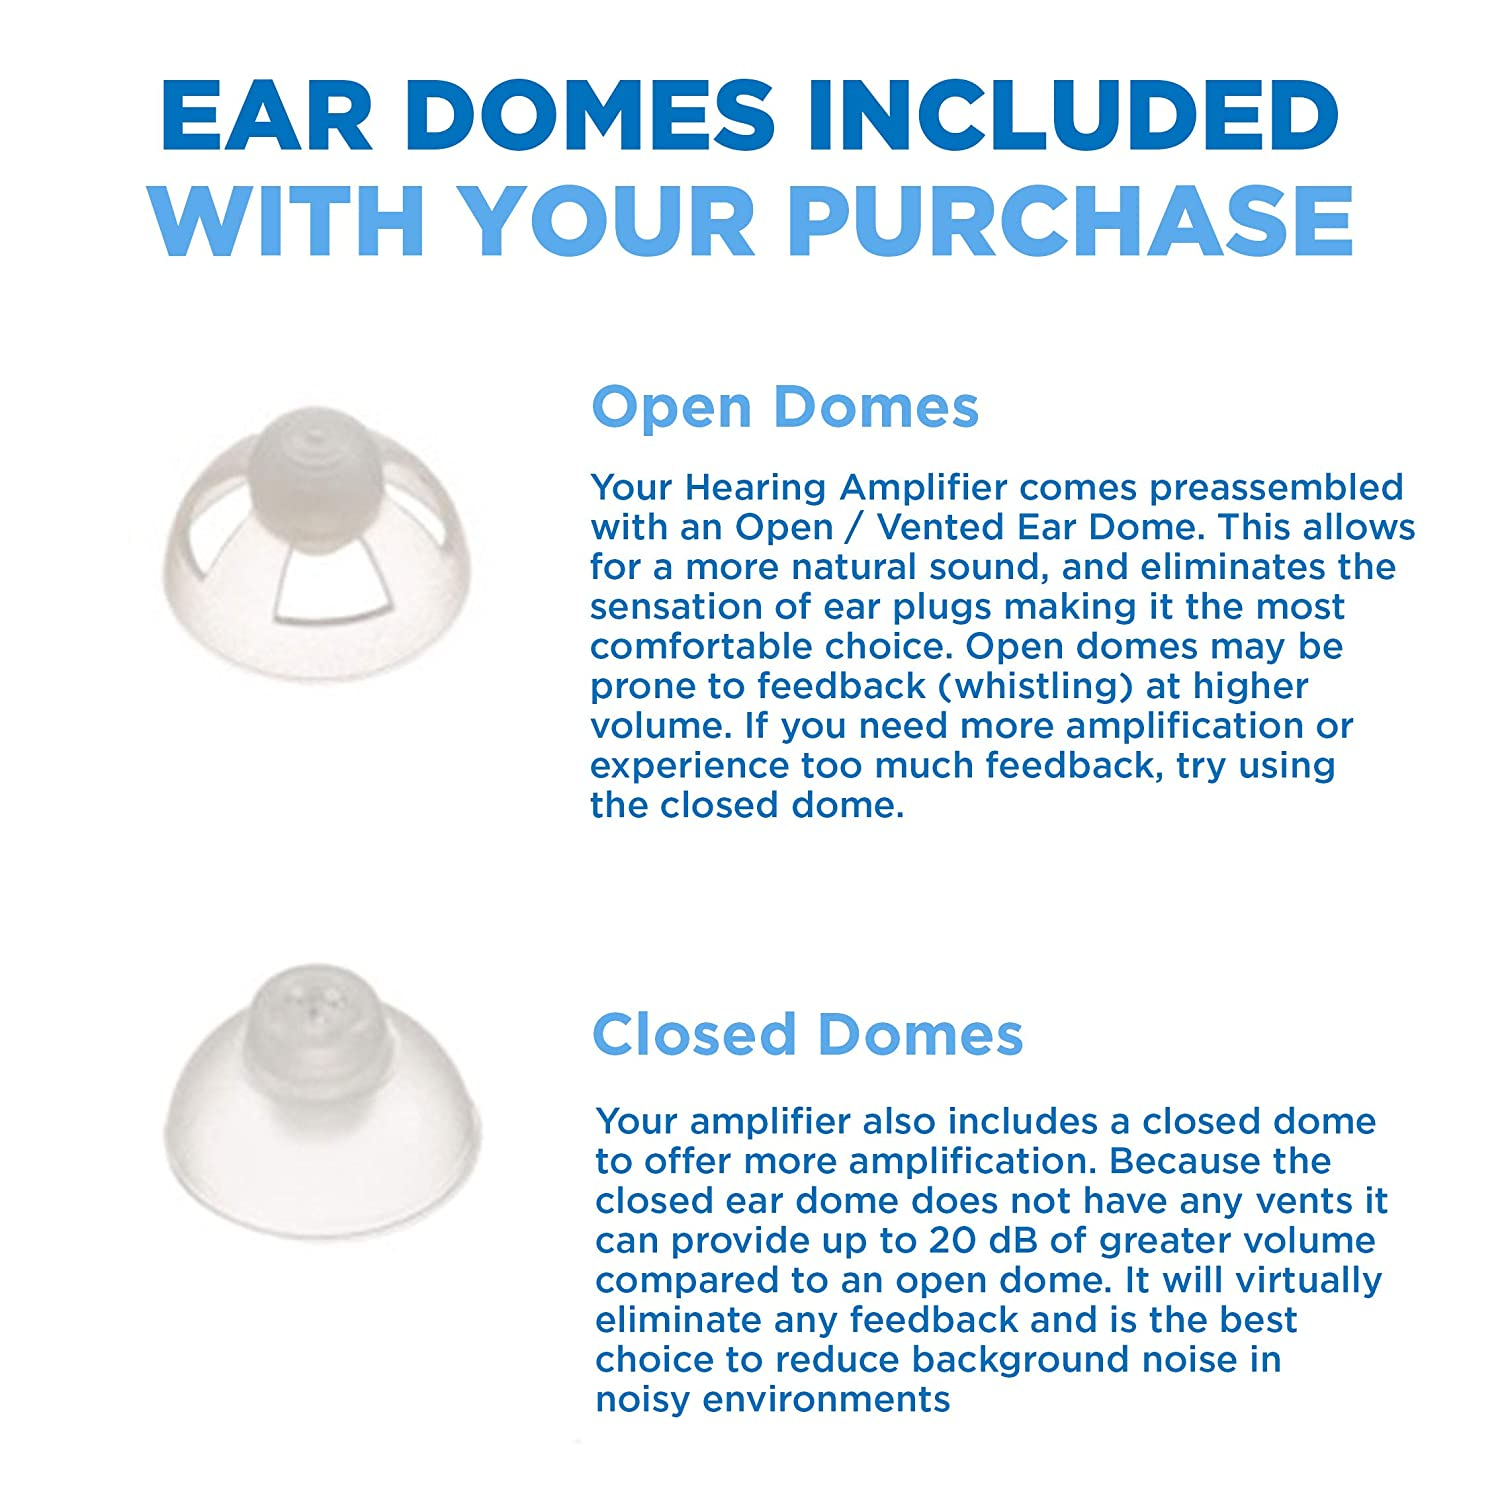 Otofonix Apex Mini Hearing Amplifiers To Aid And Assist Living Aids Accessories With Digital Noise Cancelling Pair Gray Health Personal Care